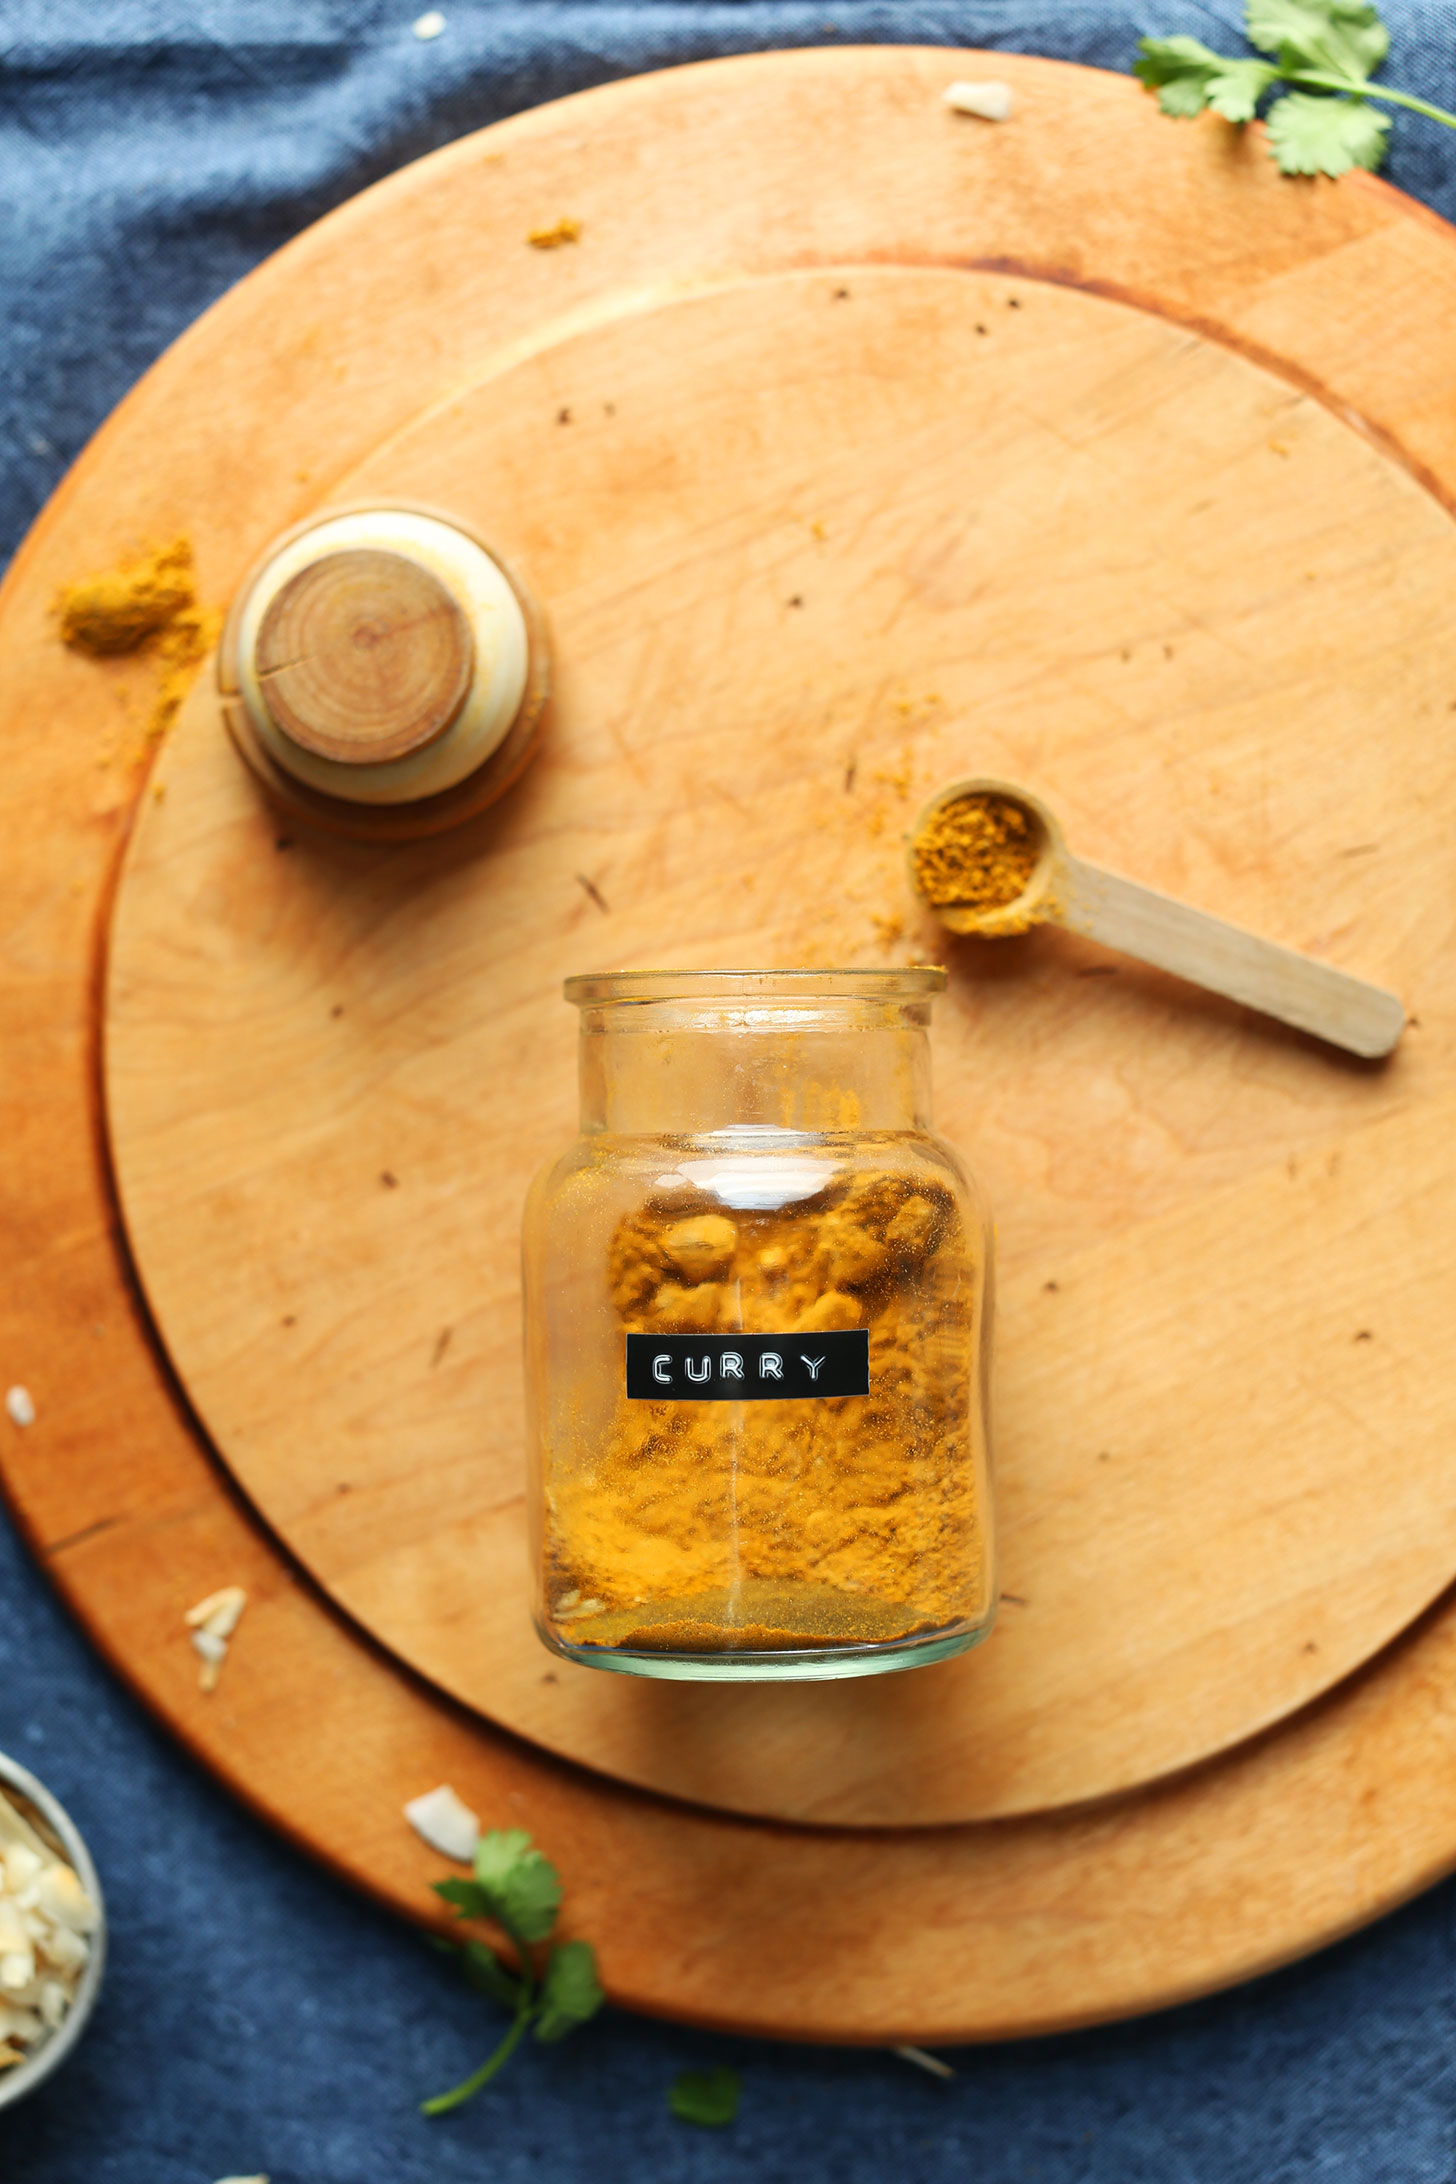 Jar and spoonful of our homemade curry powder